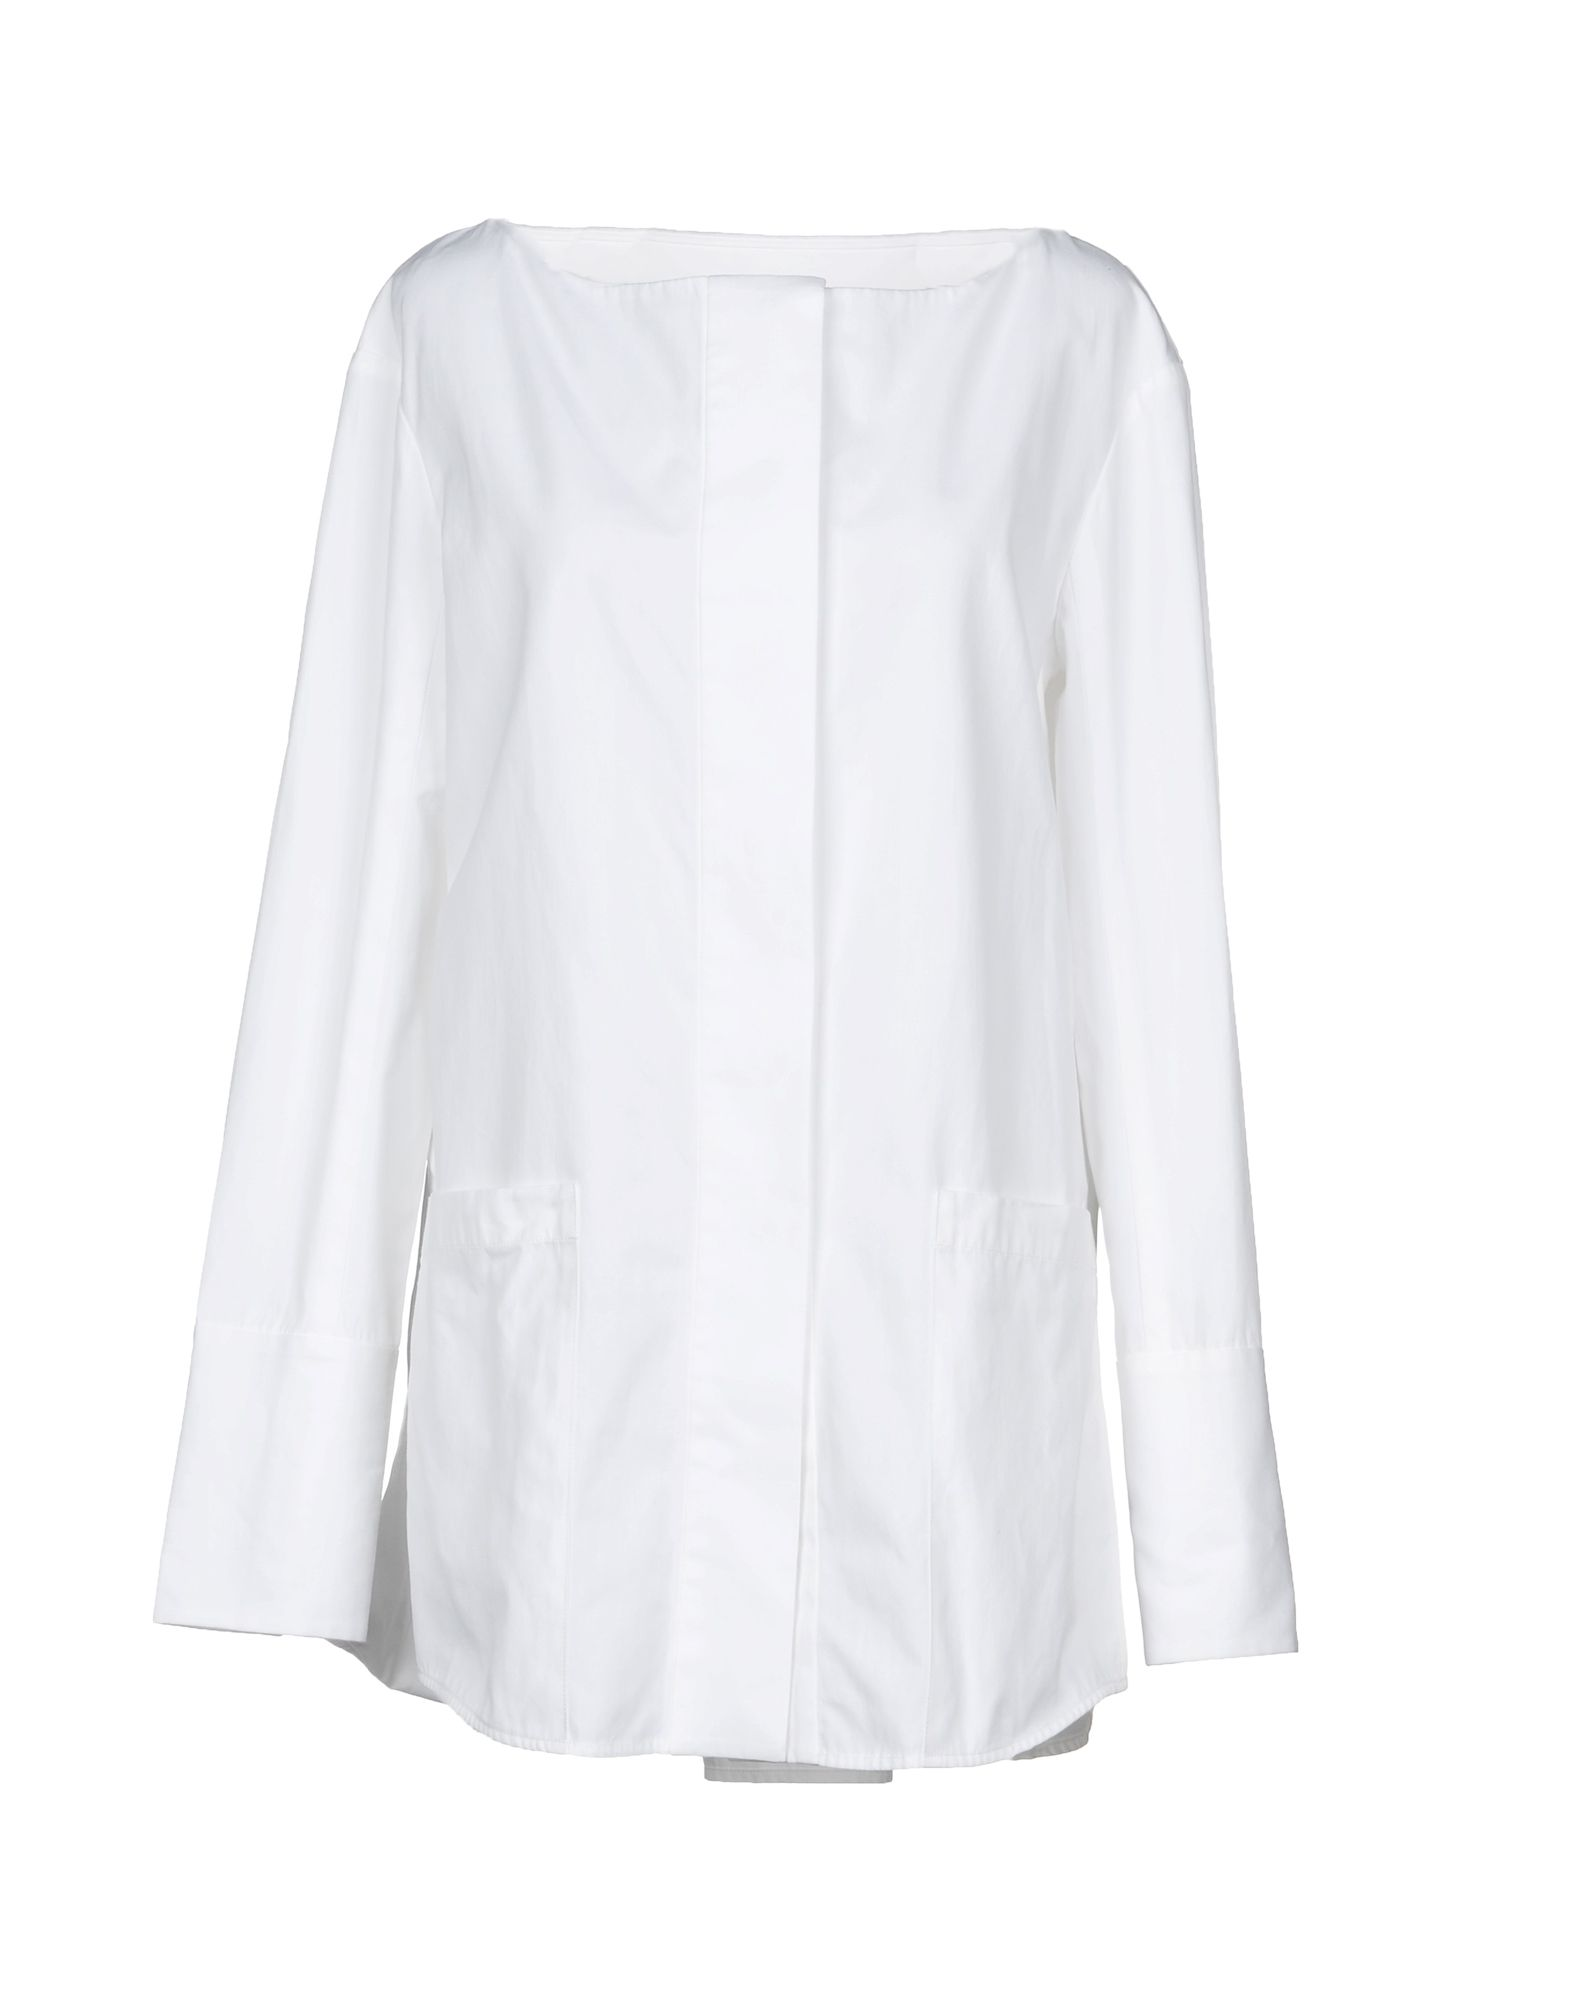 PROTAGONIST Solid Color Shirts & Blouses in White